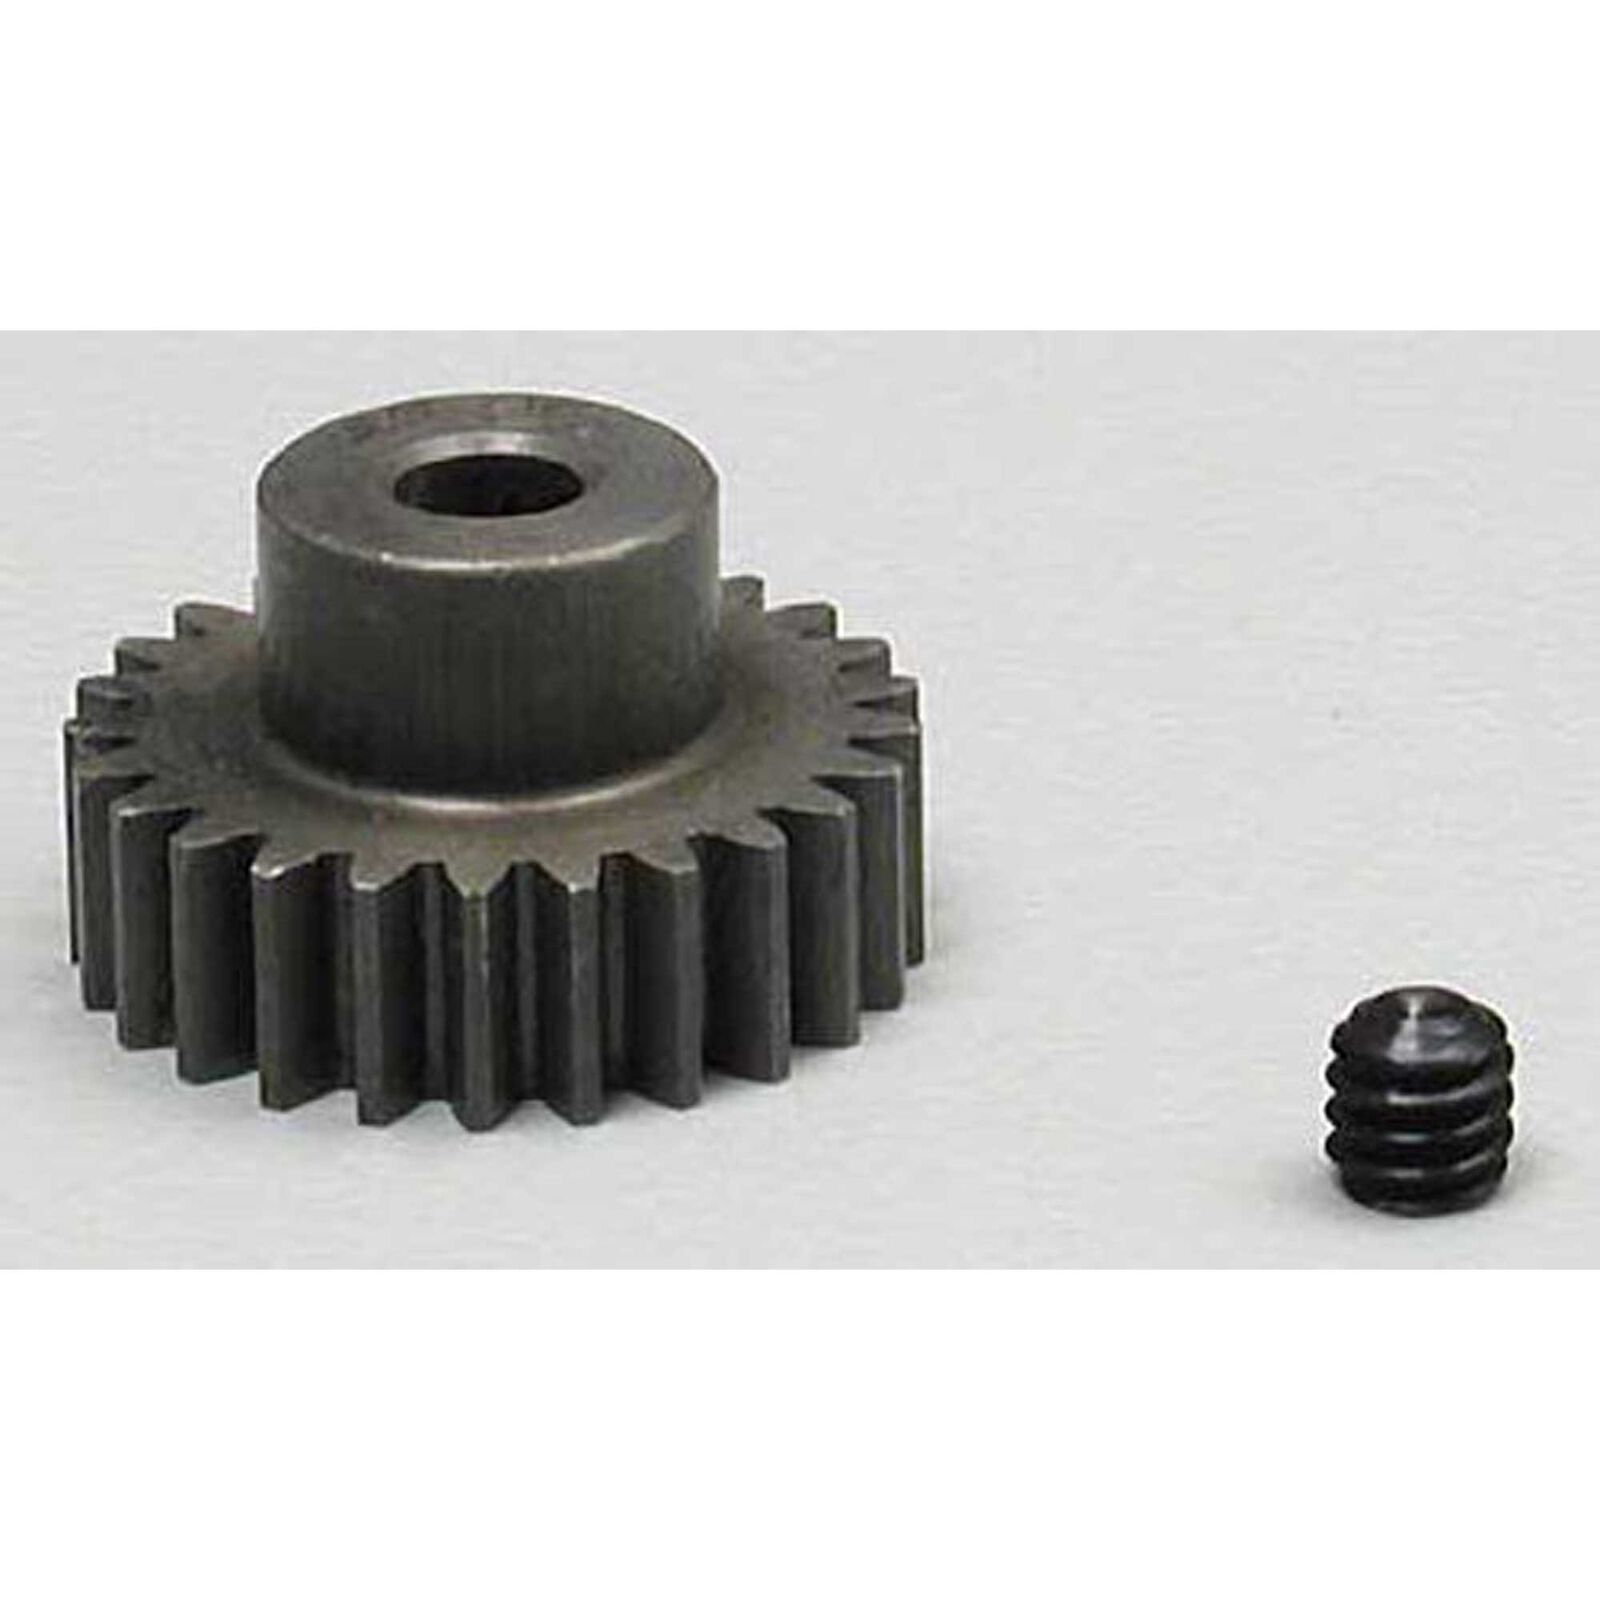 48P Absolute Pinion, 25T